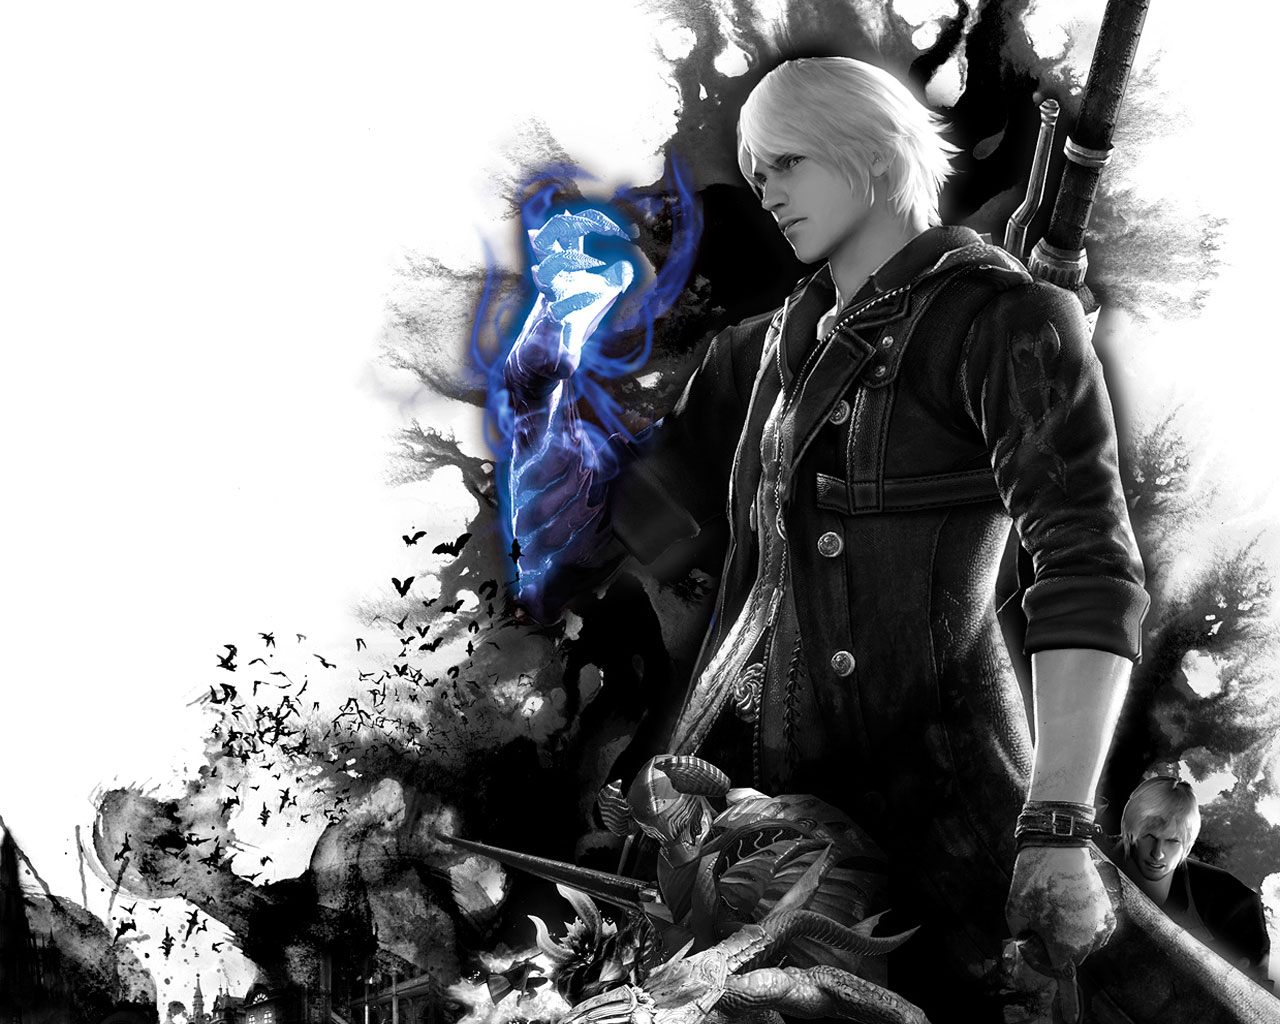 Video game gallery wallpaper avatars more devil may cry 4 nero dmc4 wallpaper background capcom action img image picture pic voltagebd Gallery